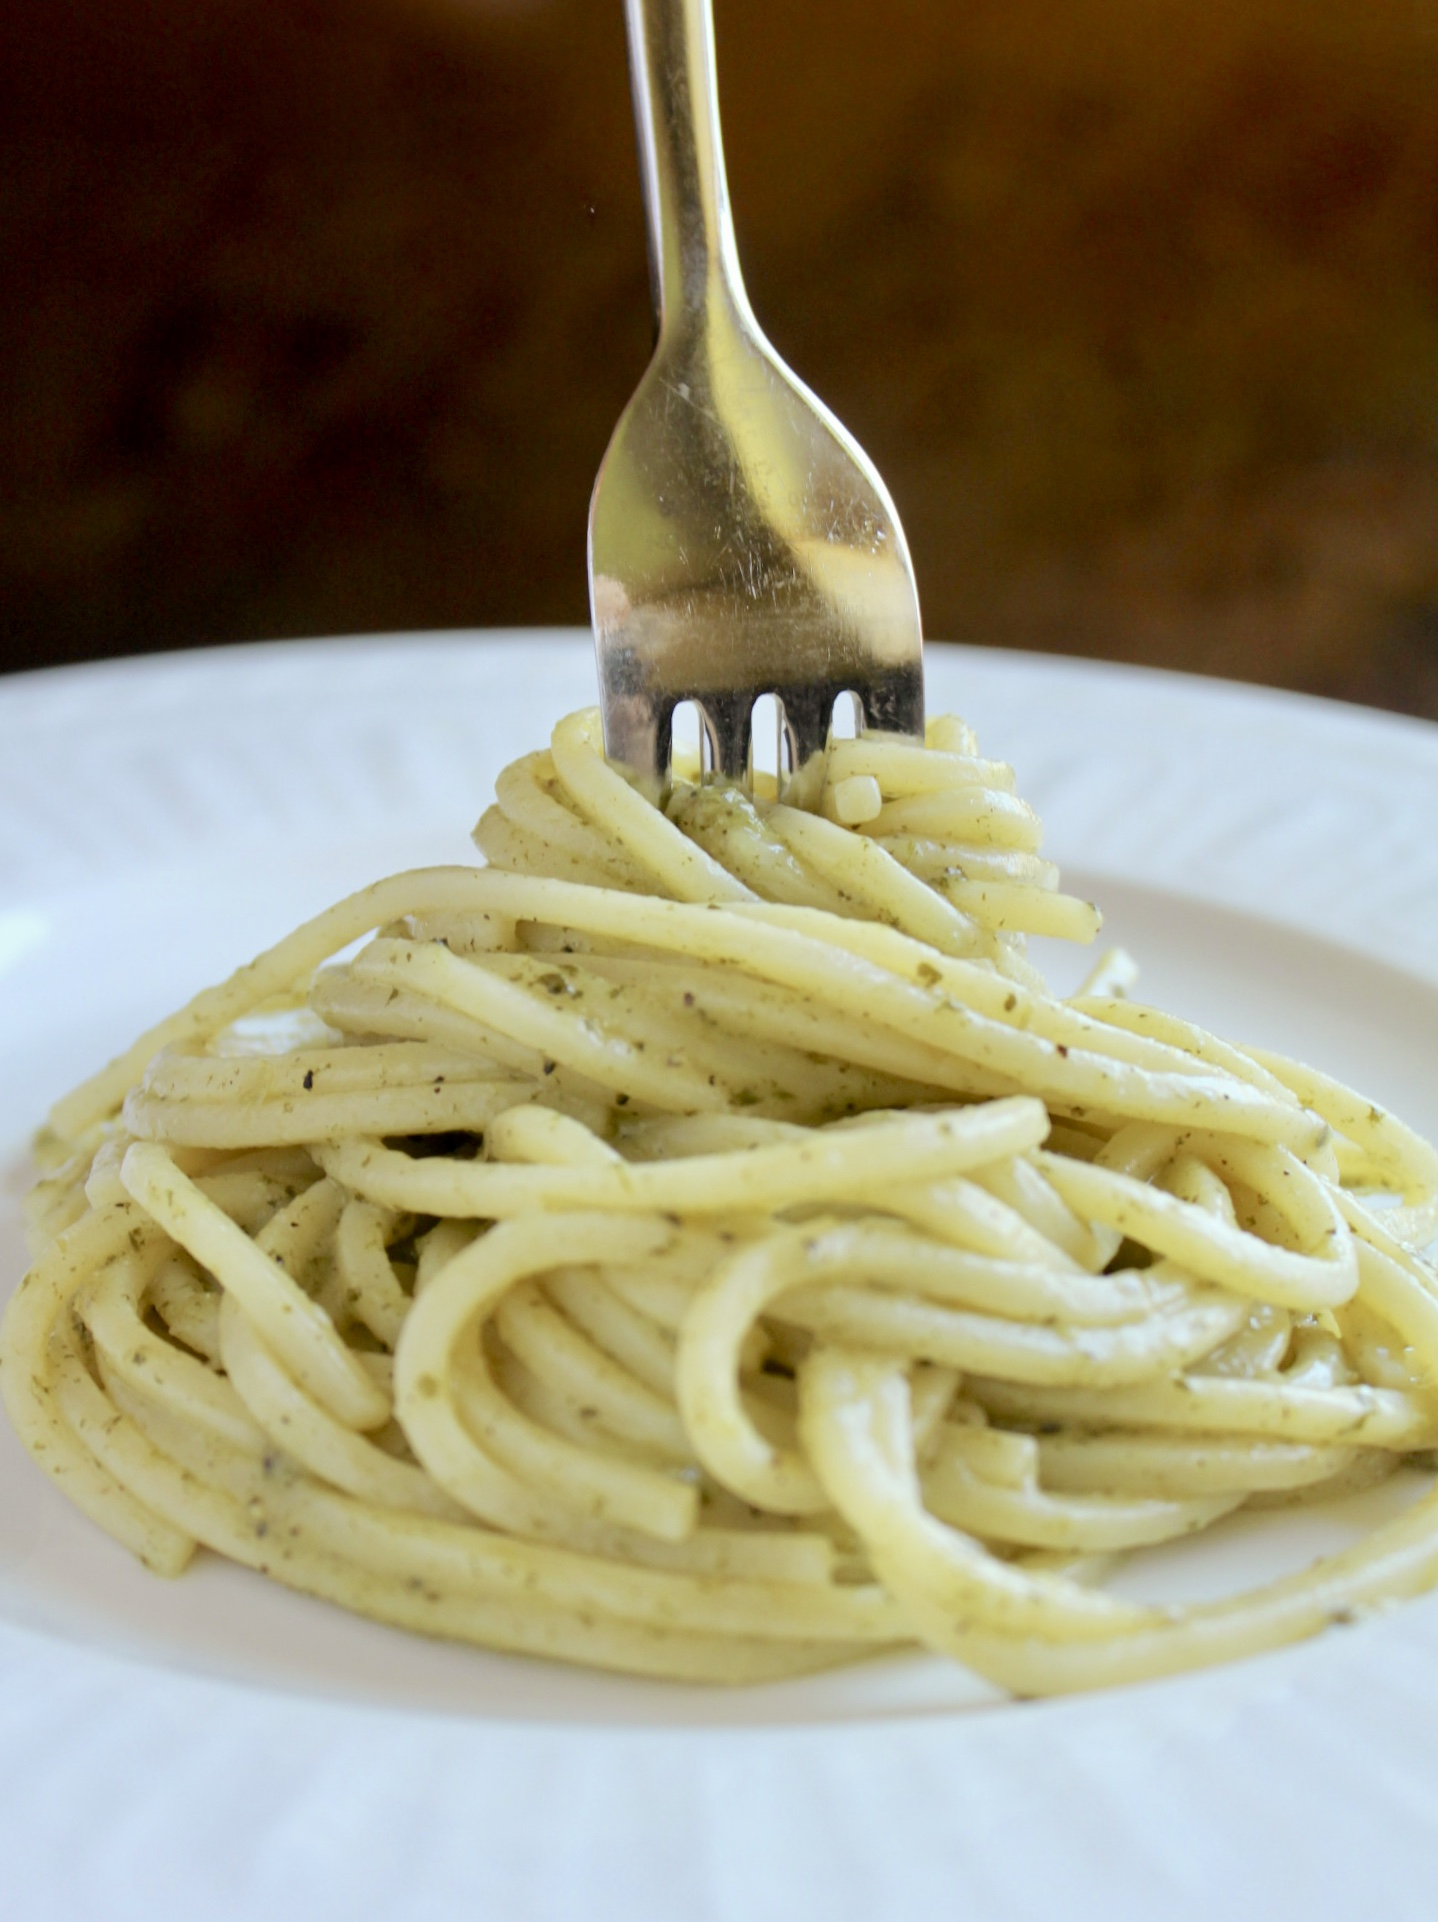 pasta cacio e pepe with dandelion on a plate with a fork